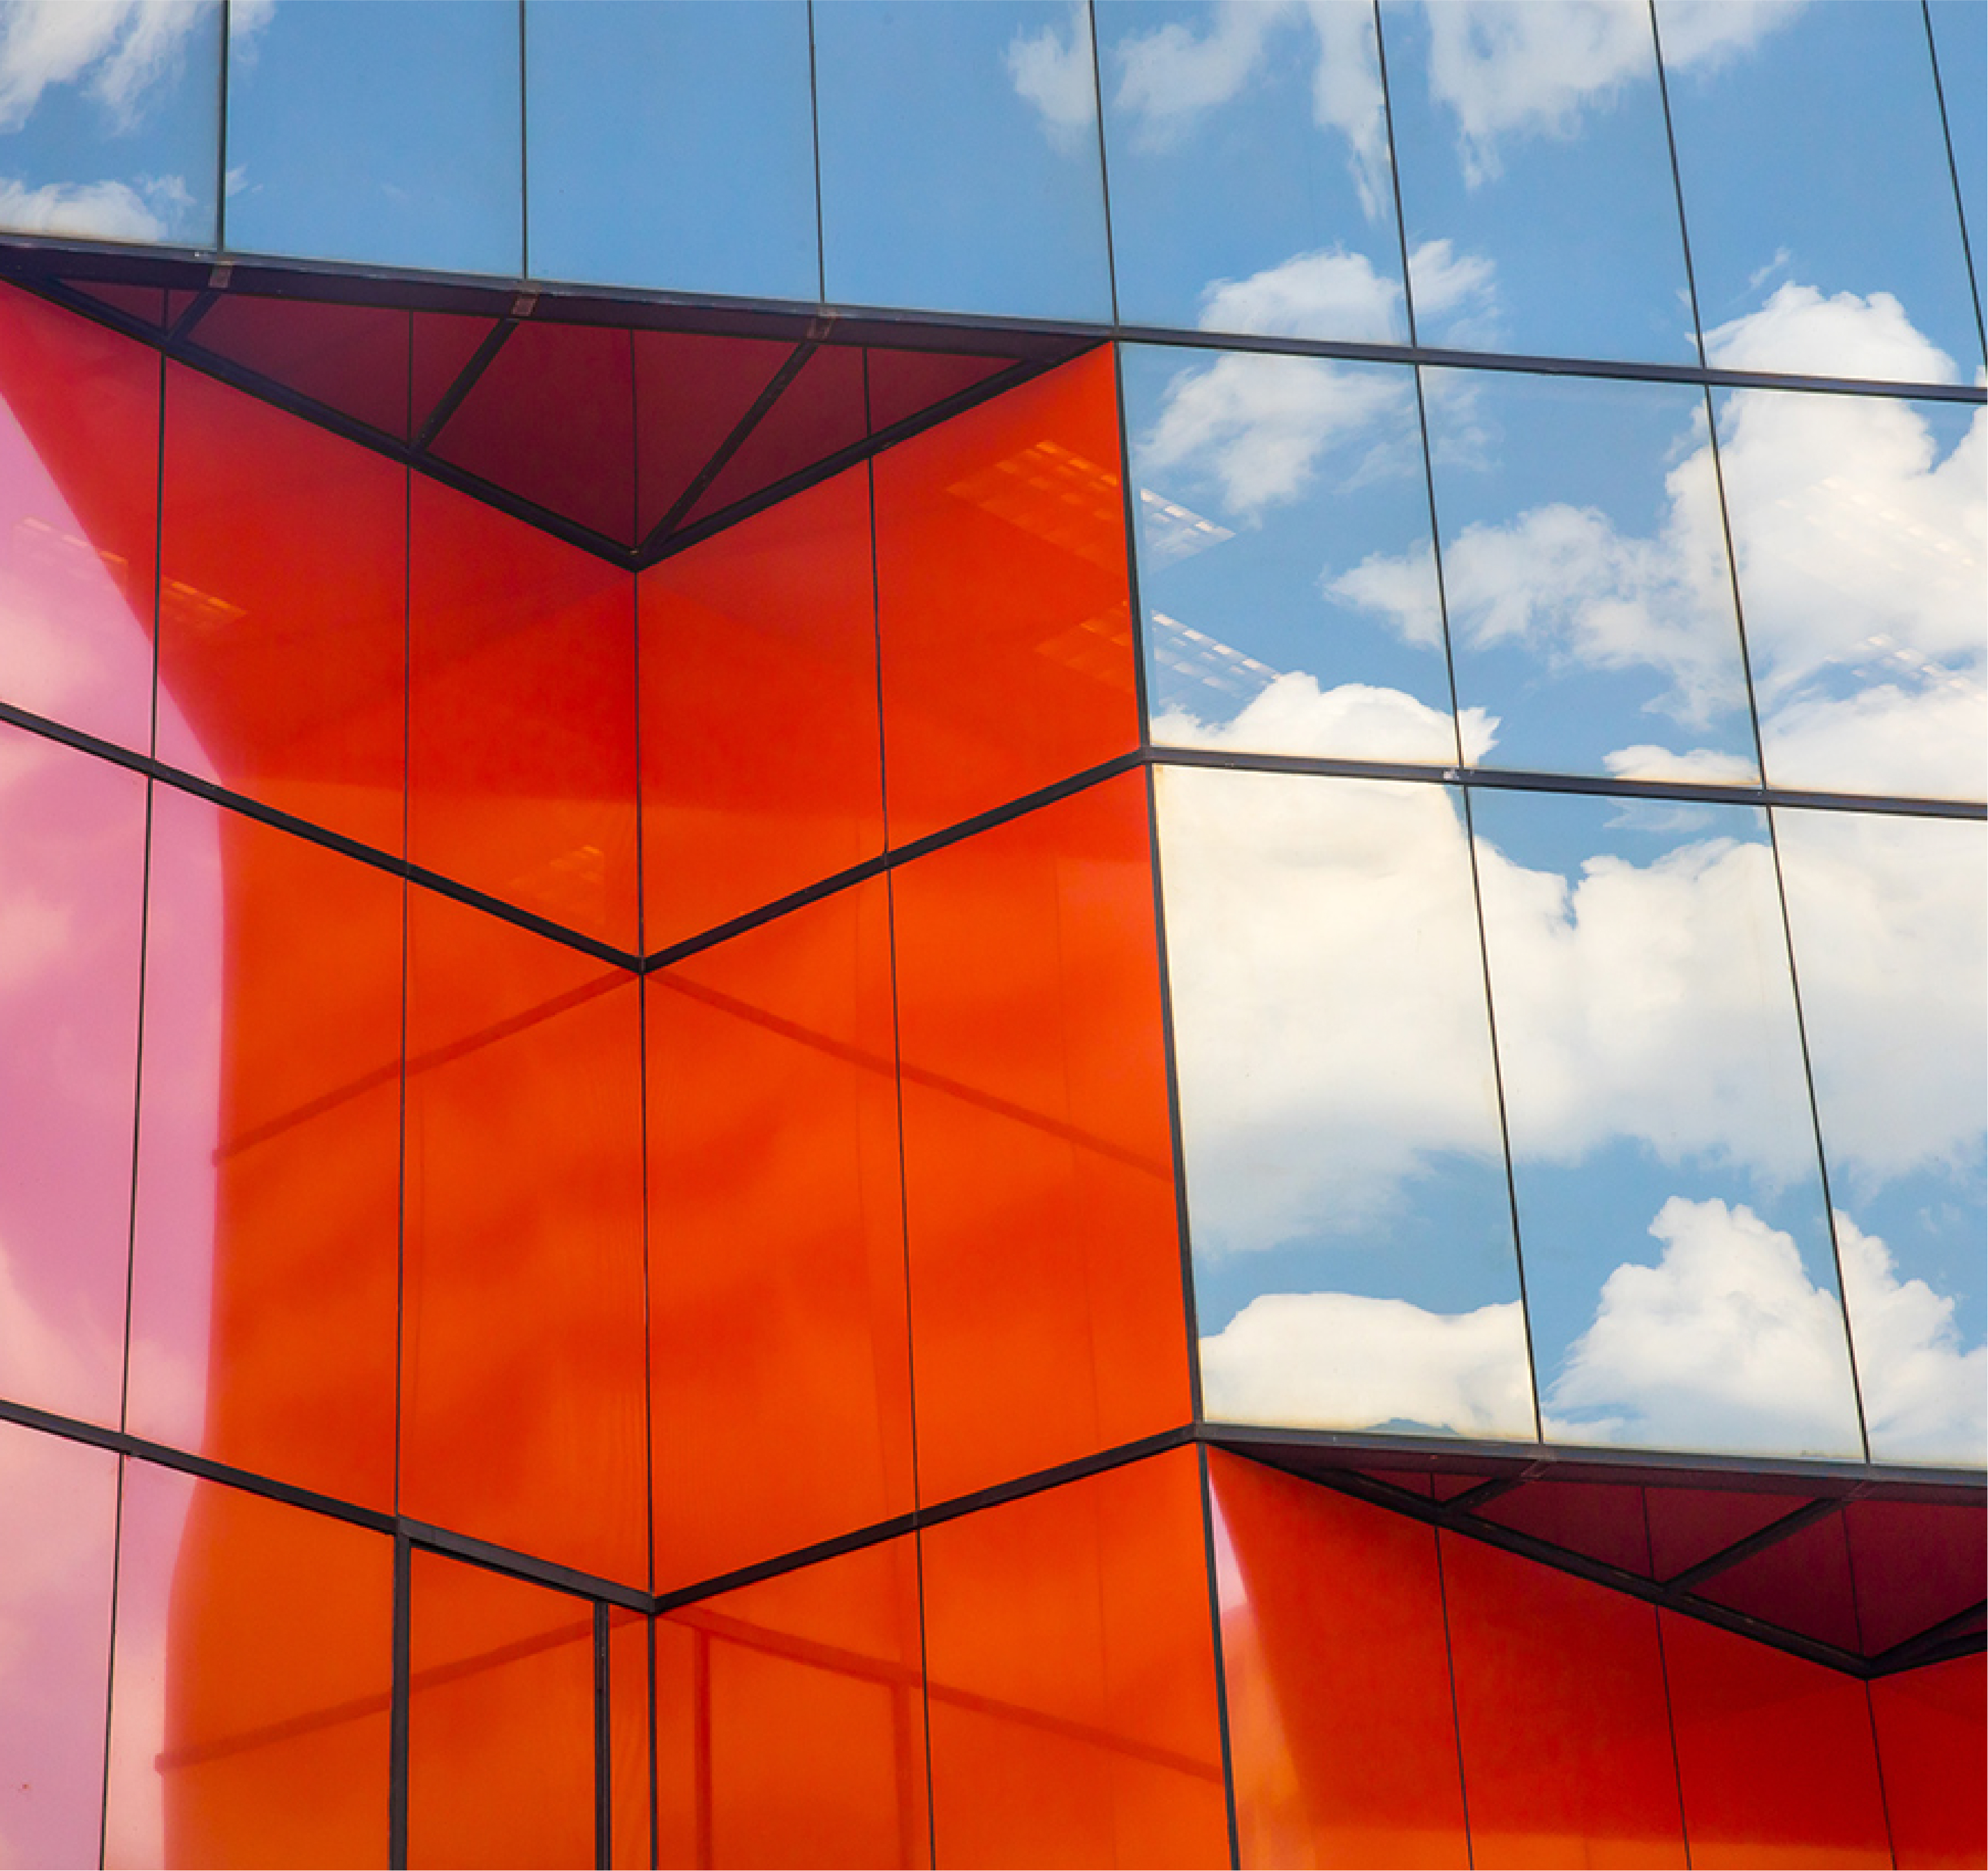 Building with glass construction reflecting clouds